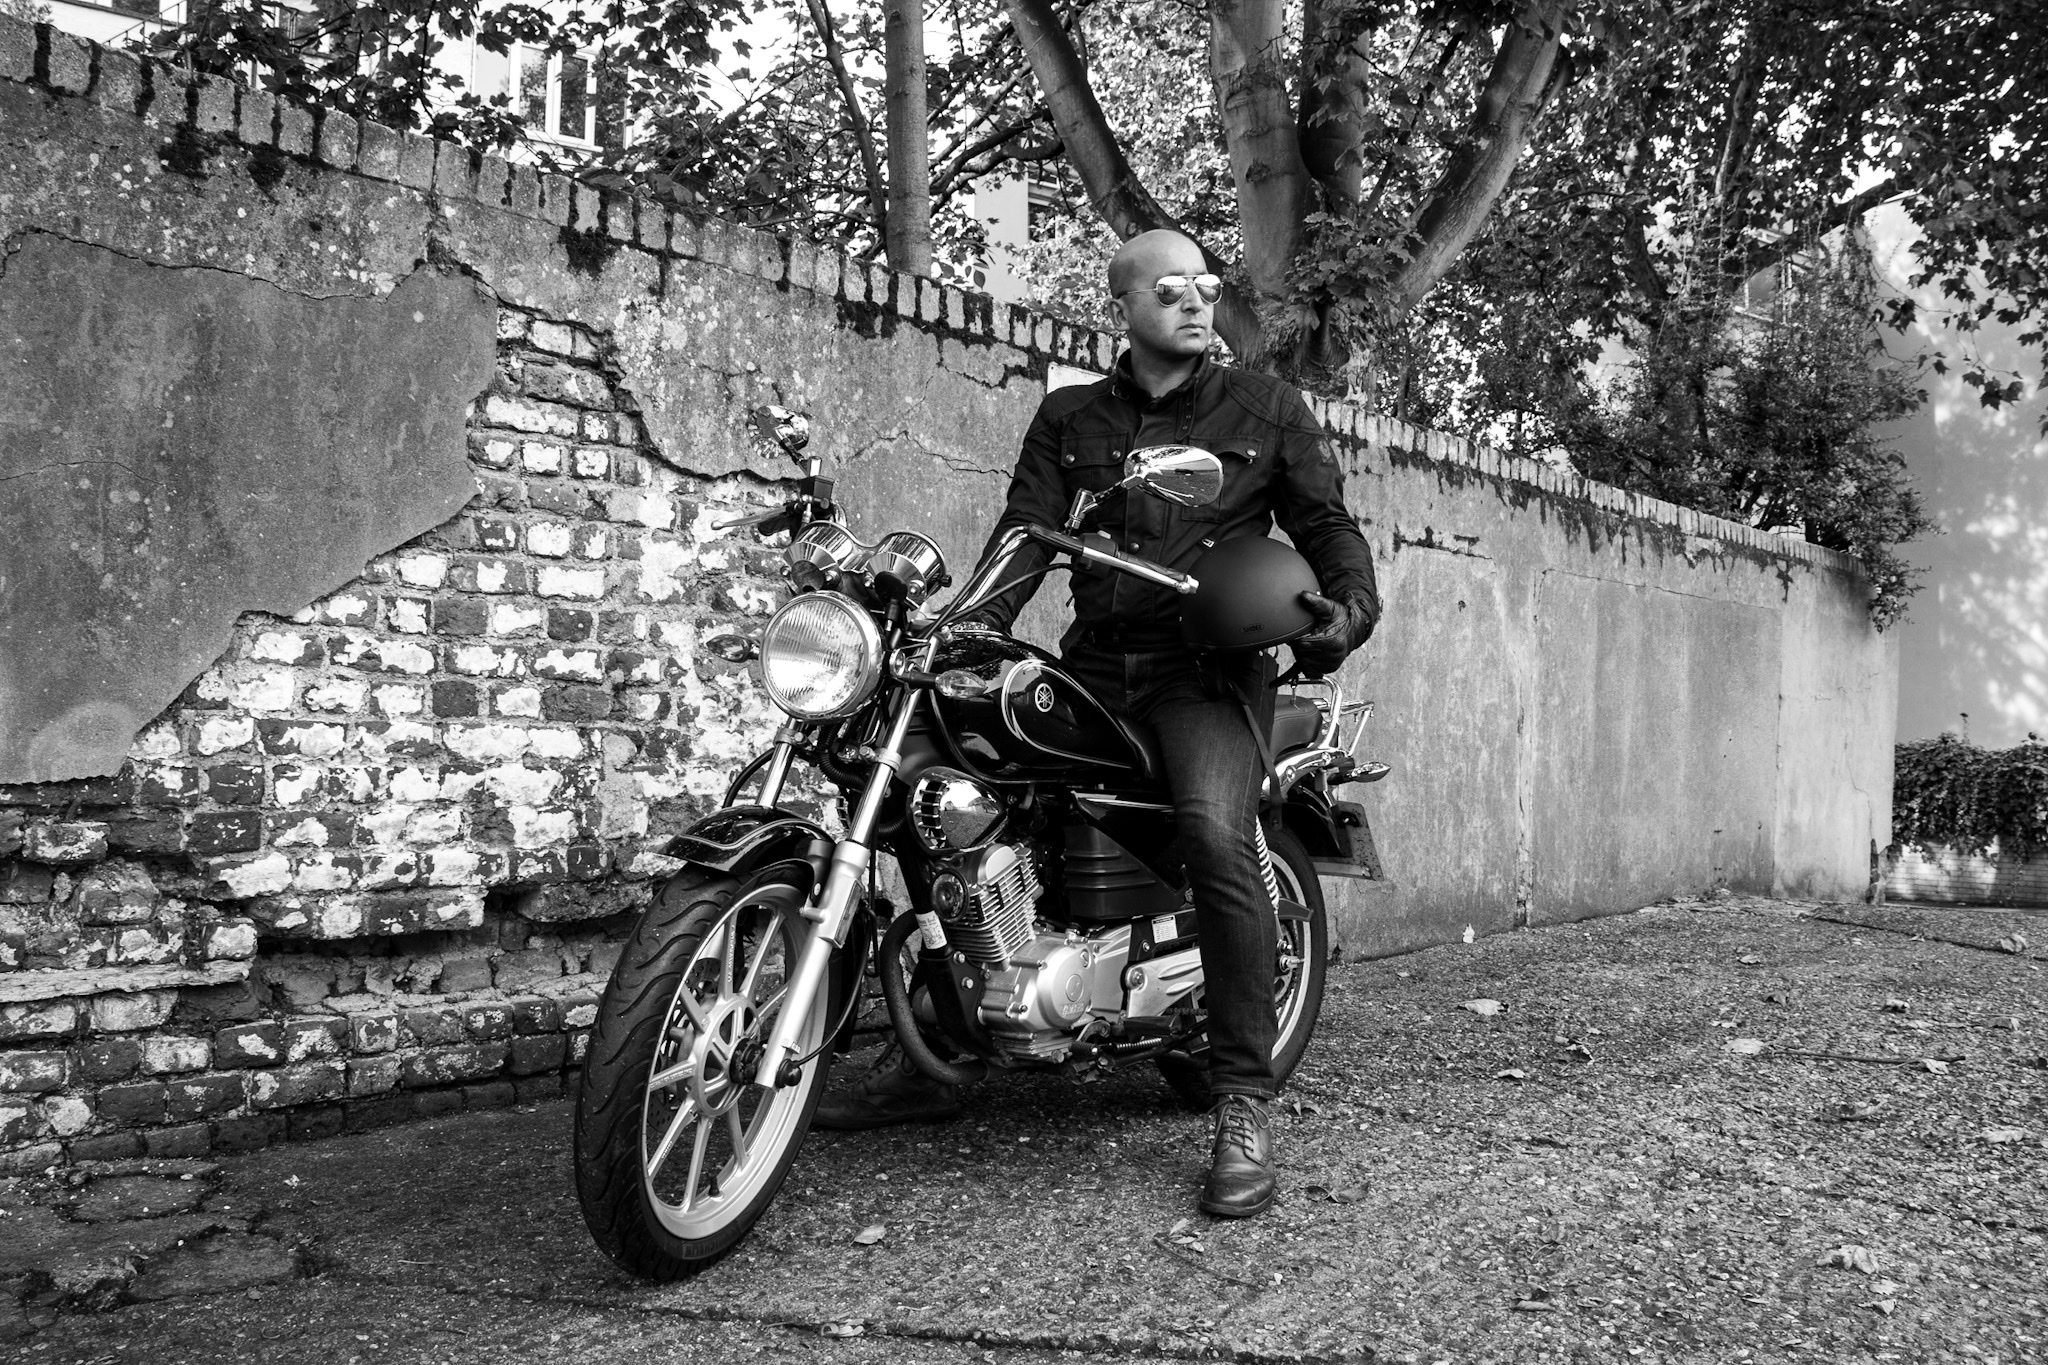 Motorbike portrait photography